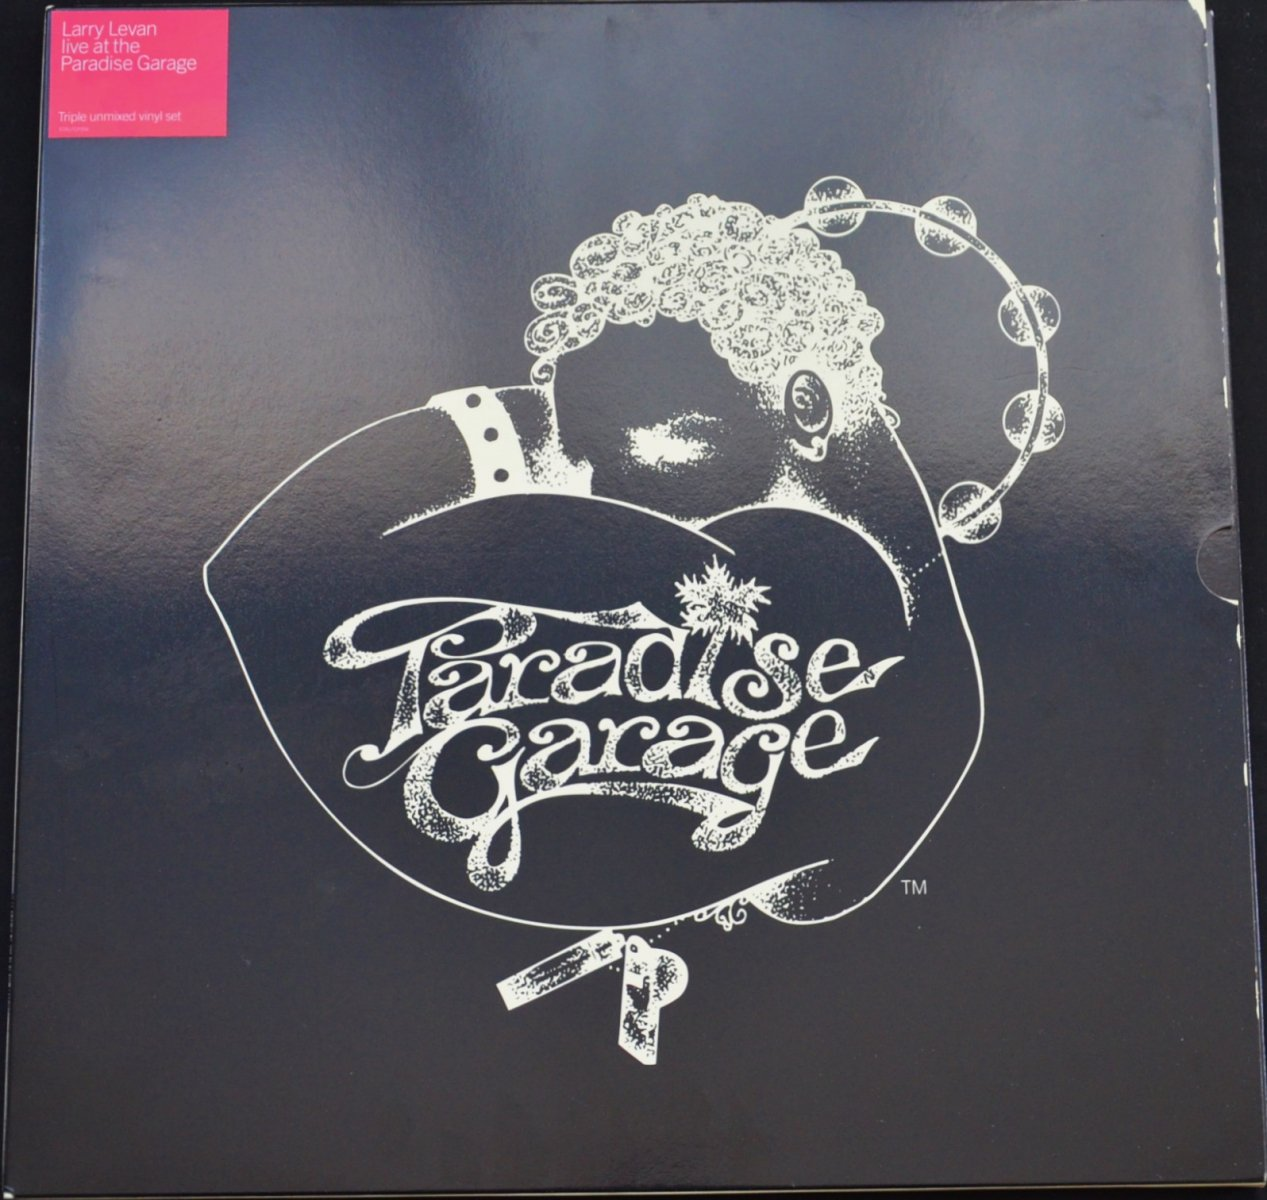 LARRY LEVAN ‎/ LARRY LEVAN LIVE AT THE PARADISE GARAGE (3×12